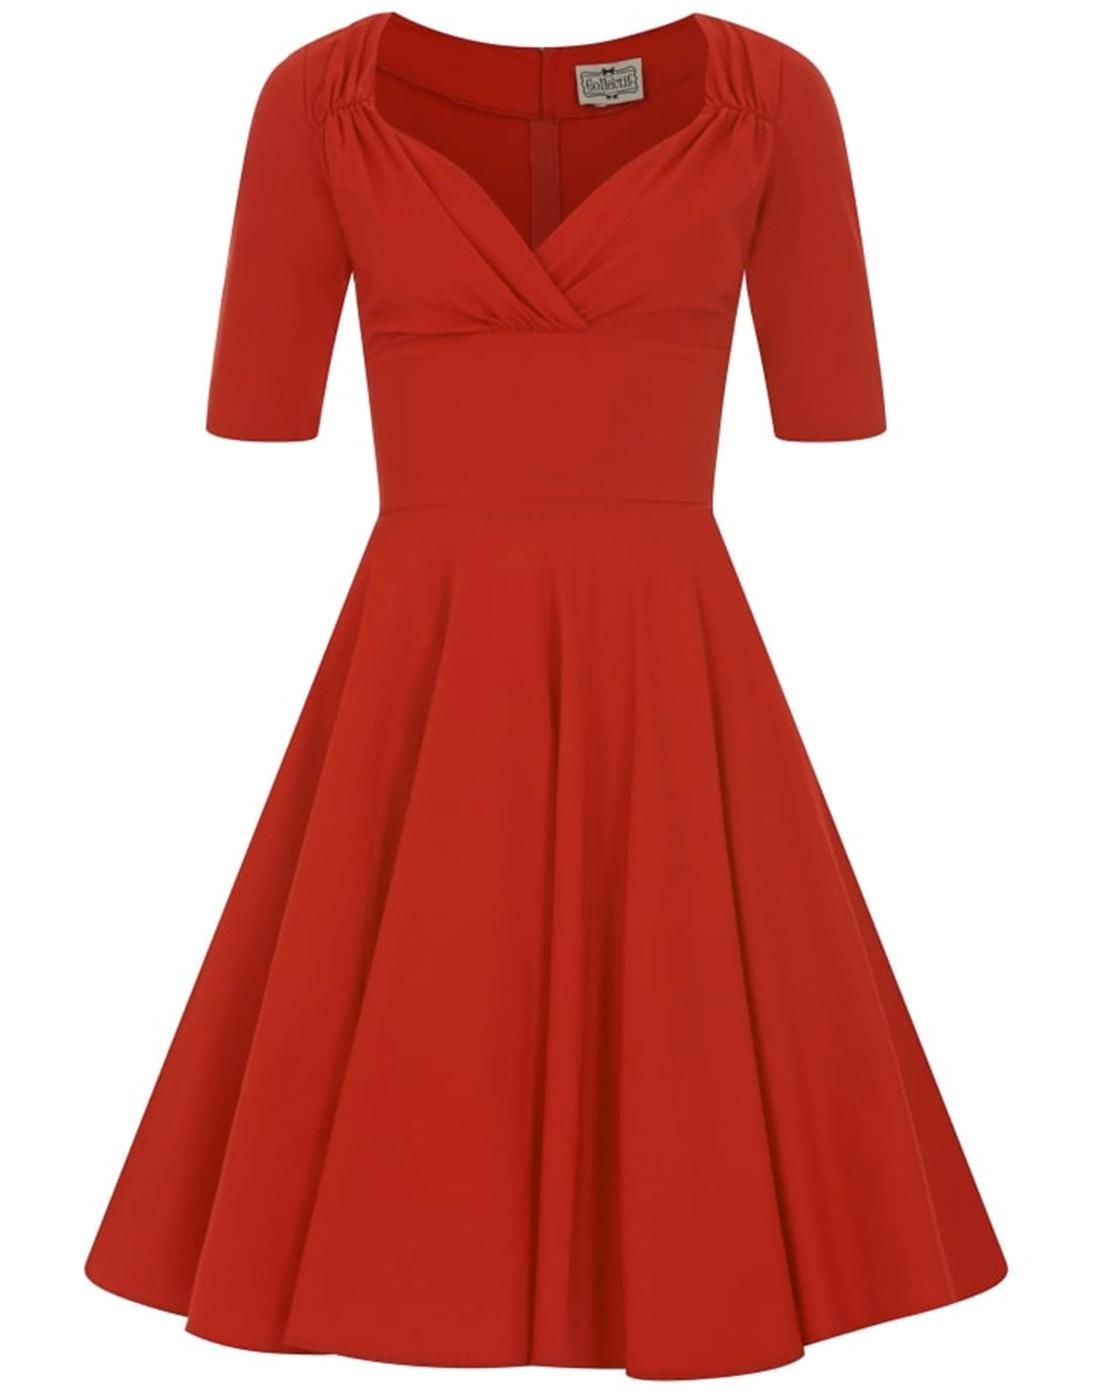 Trixie Doll COLLECTIF Retro 50s Vintage Dress Red